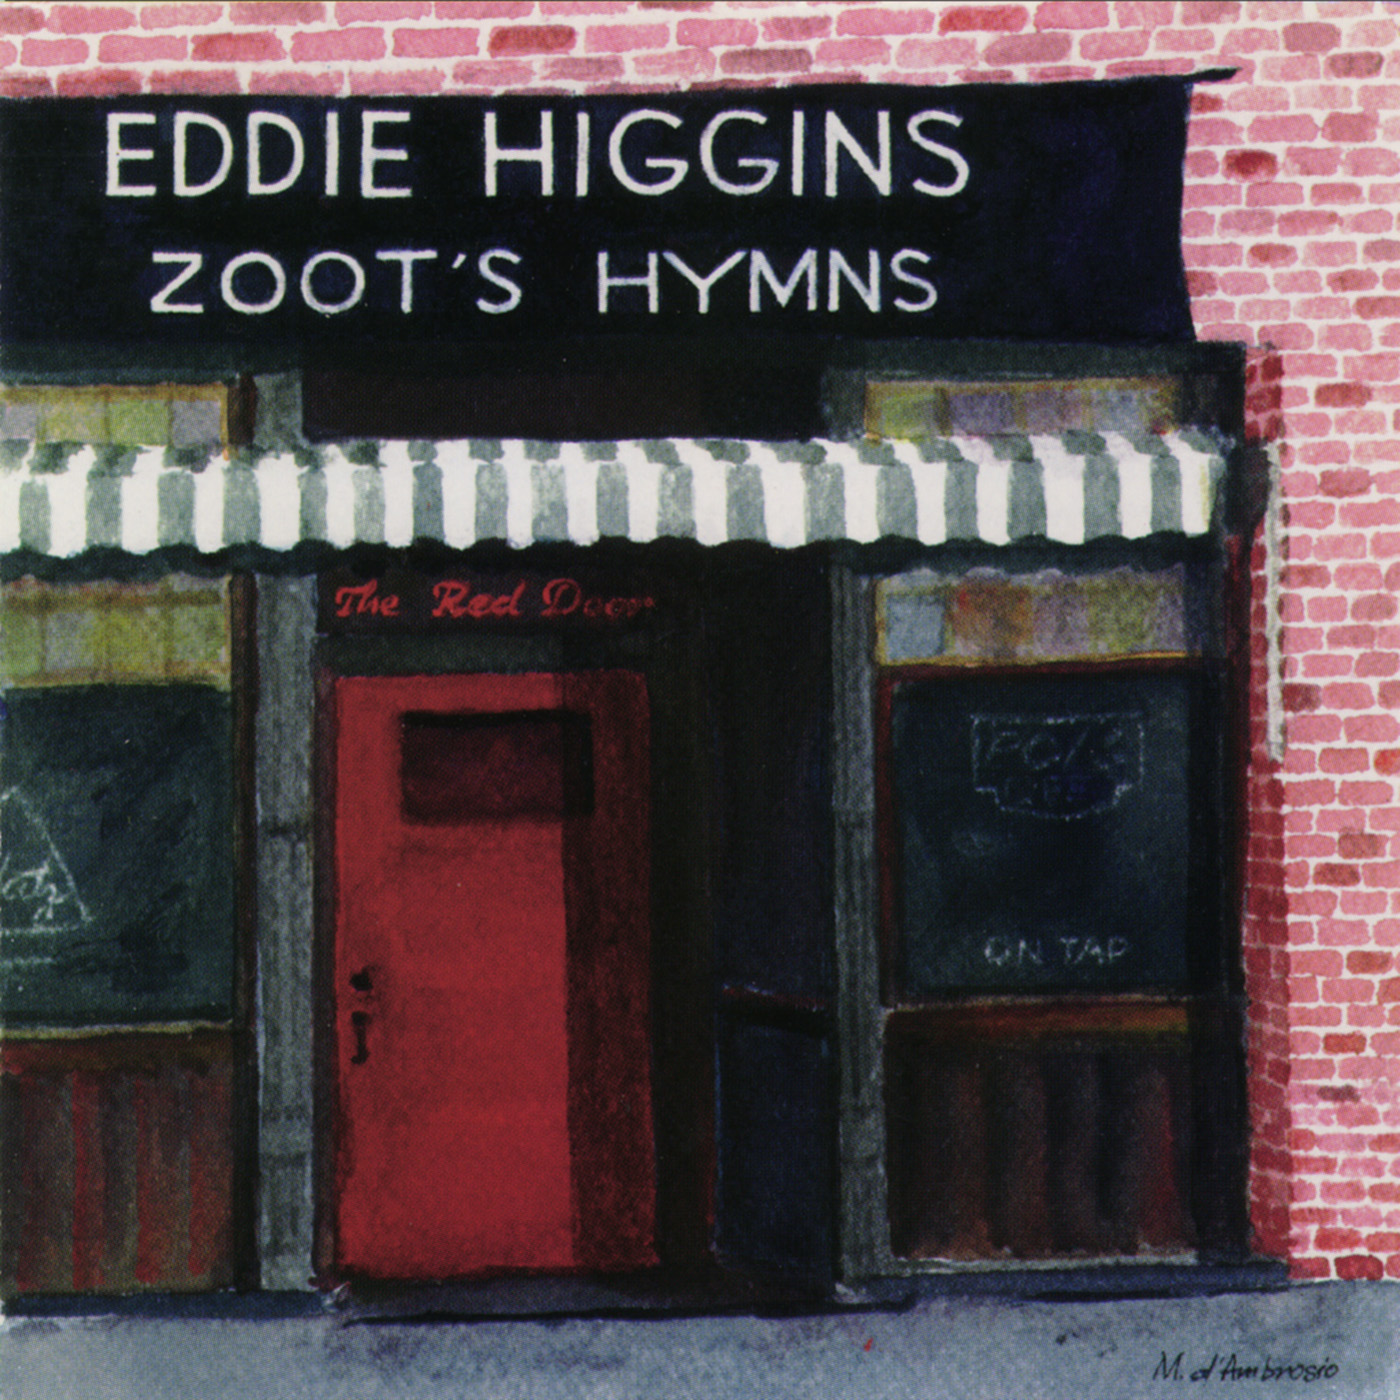 Zoot'S Hymns by Eddie Higgins cover